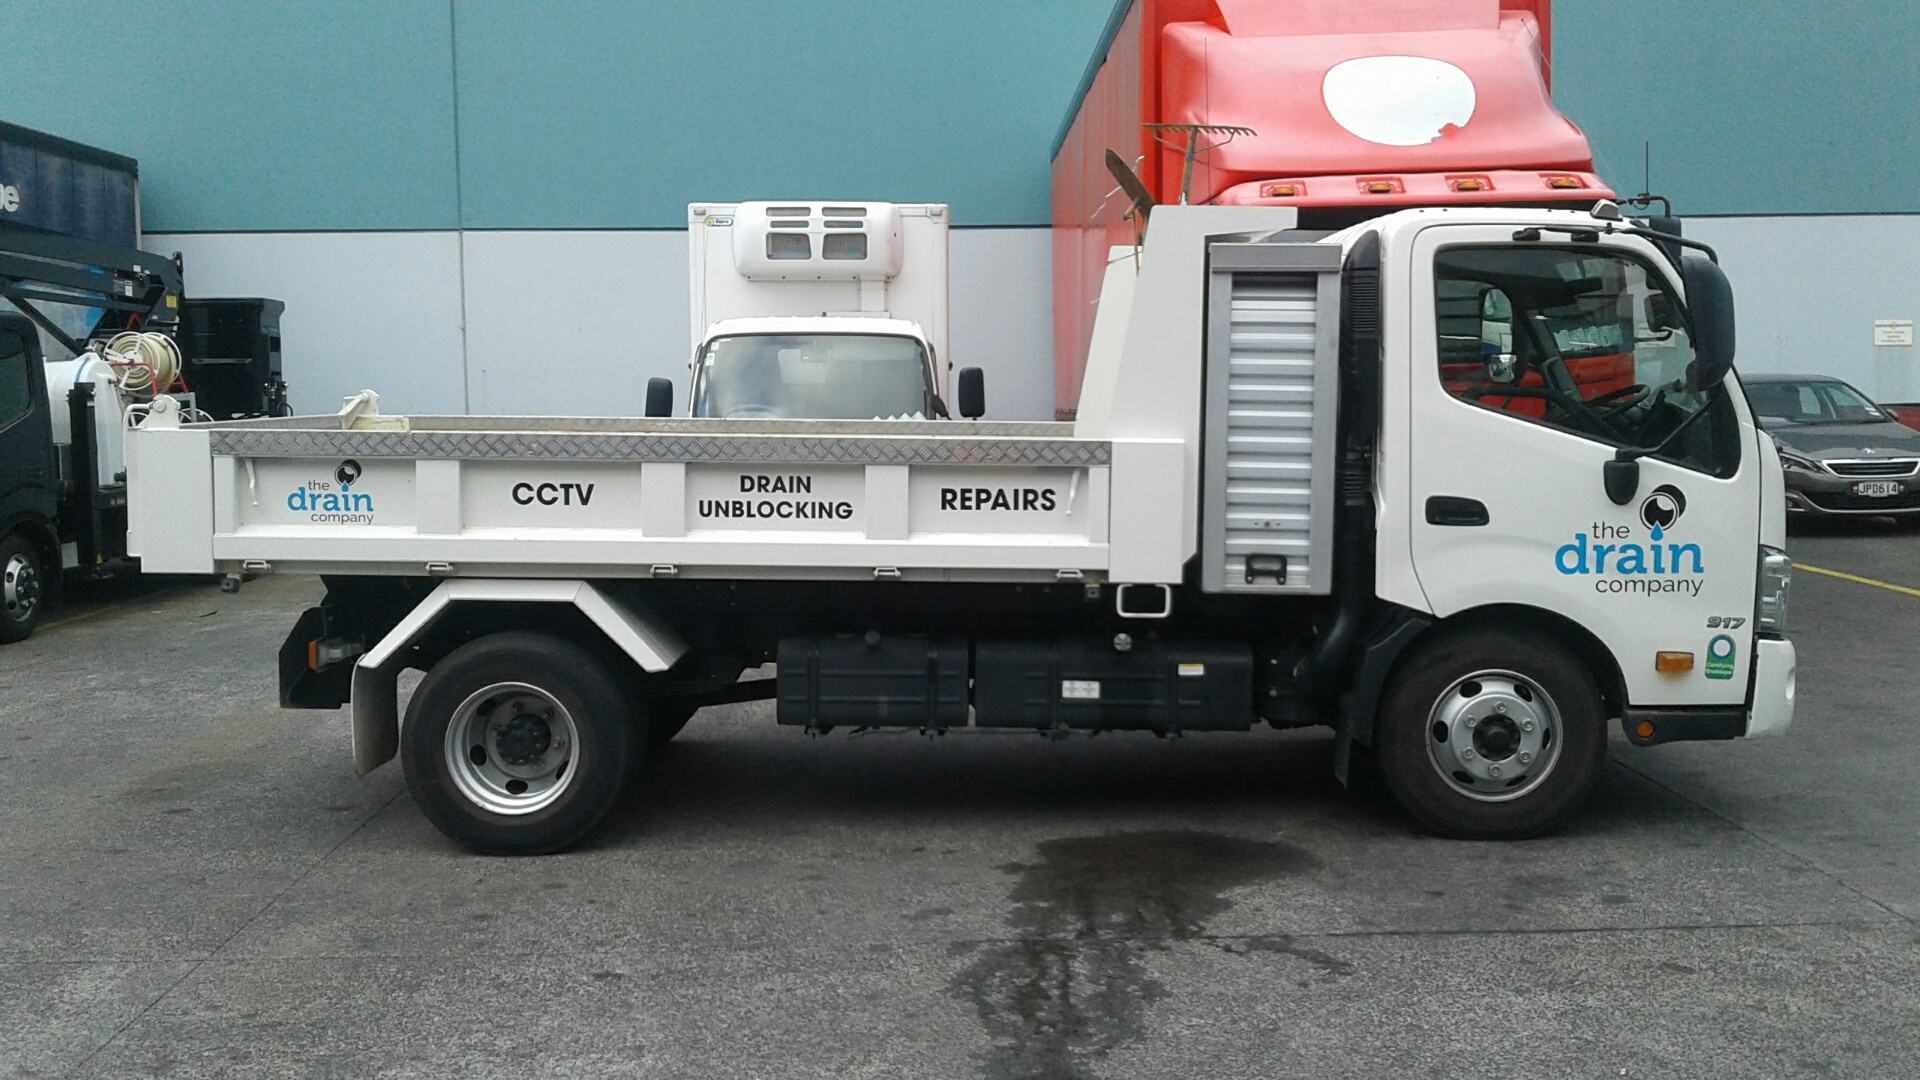 The Drain Company - 300 Series 917 Tipper